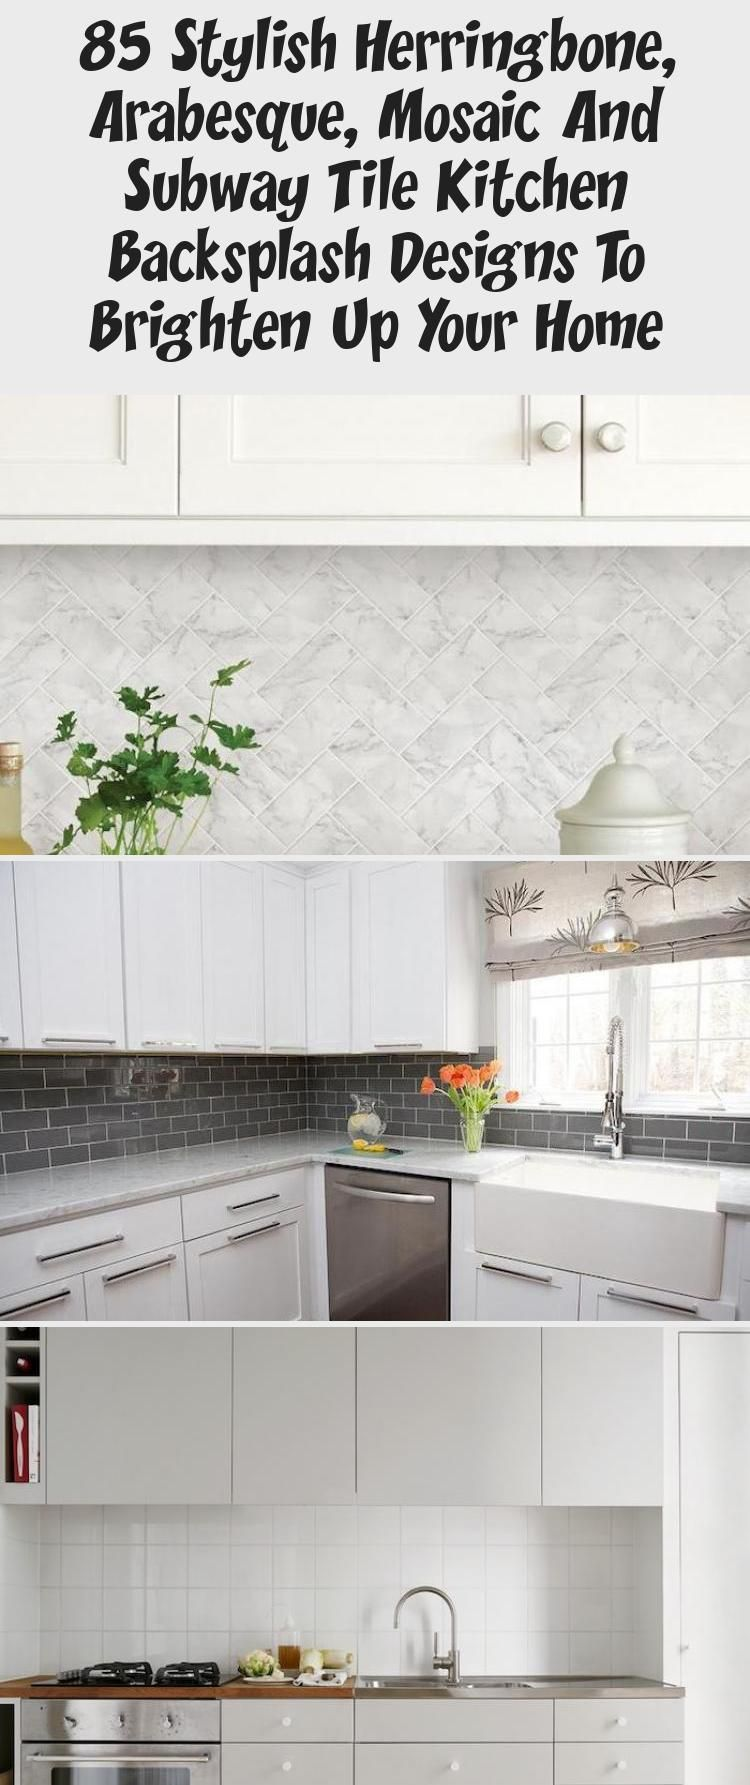 85 Stylish Herringbone, Arabesque, Mosaic And Subway Tile Kitchen Backsplash Designs To Brighten Up Your Home - KTCHN #countertop